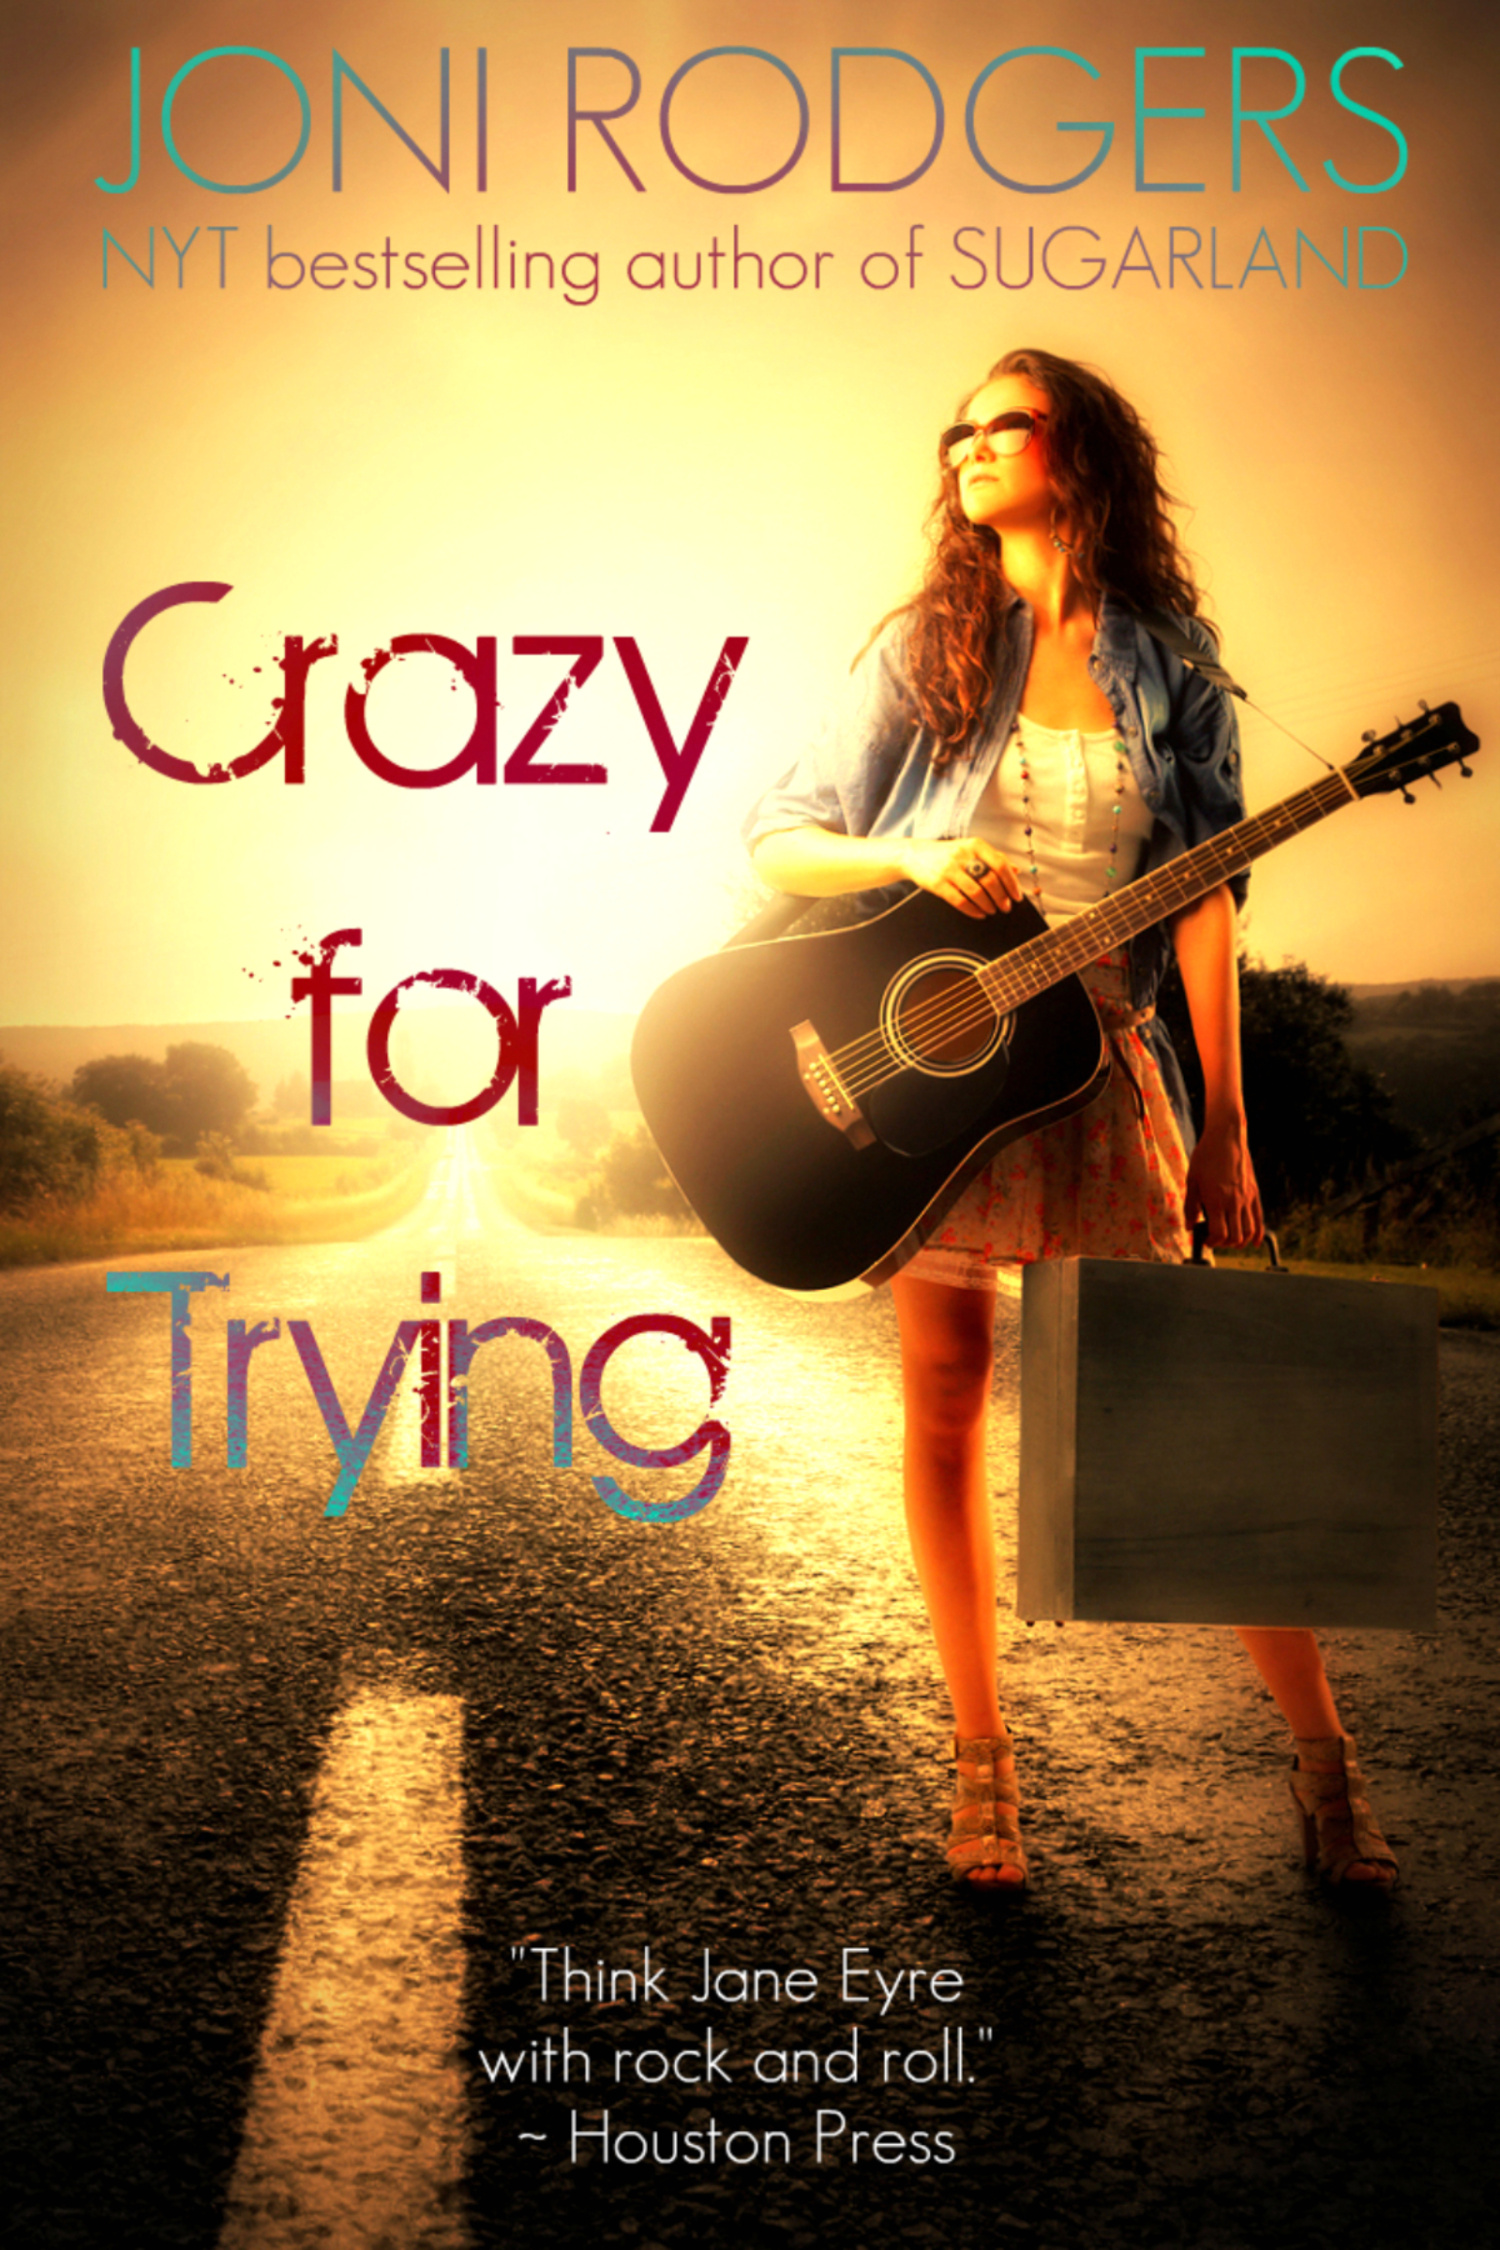 Crazy for Trying